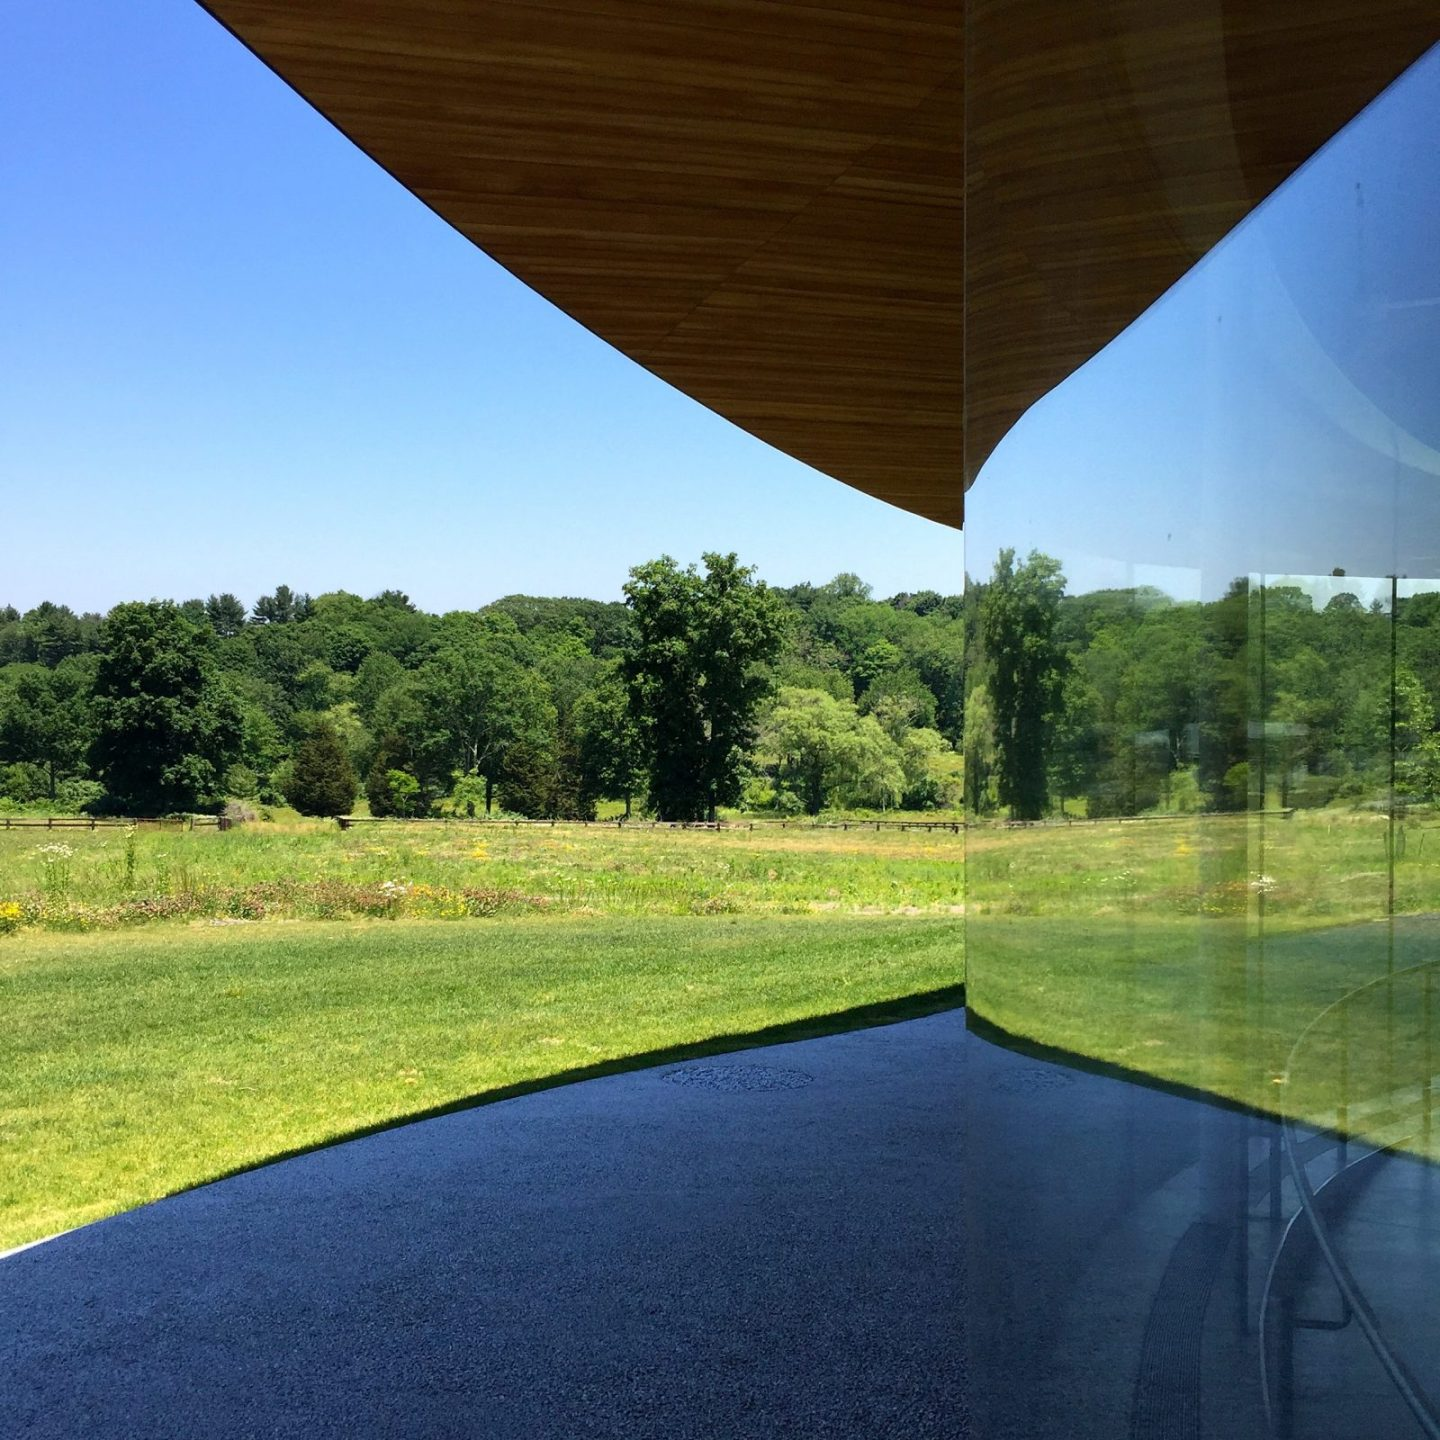 A Day at Grace Farms: Where Architecture Meets Nature